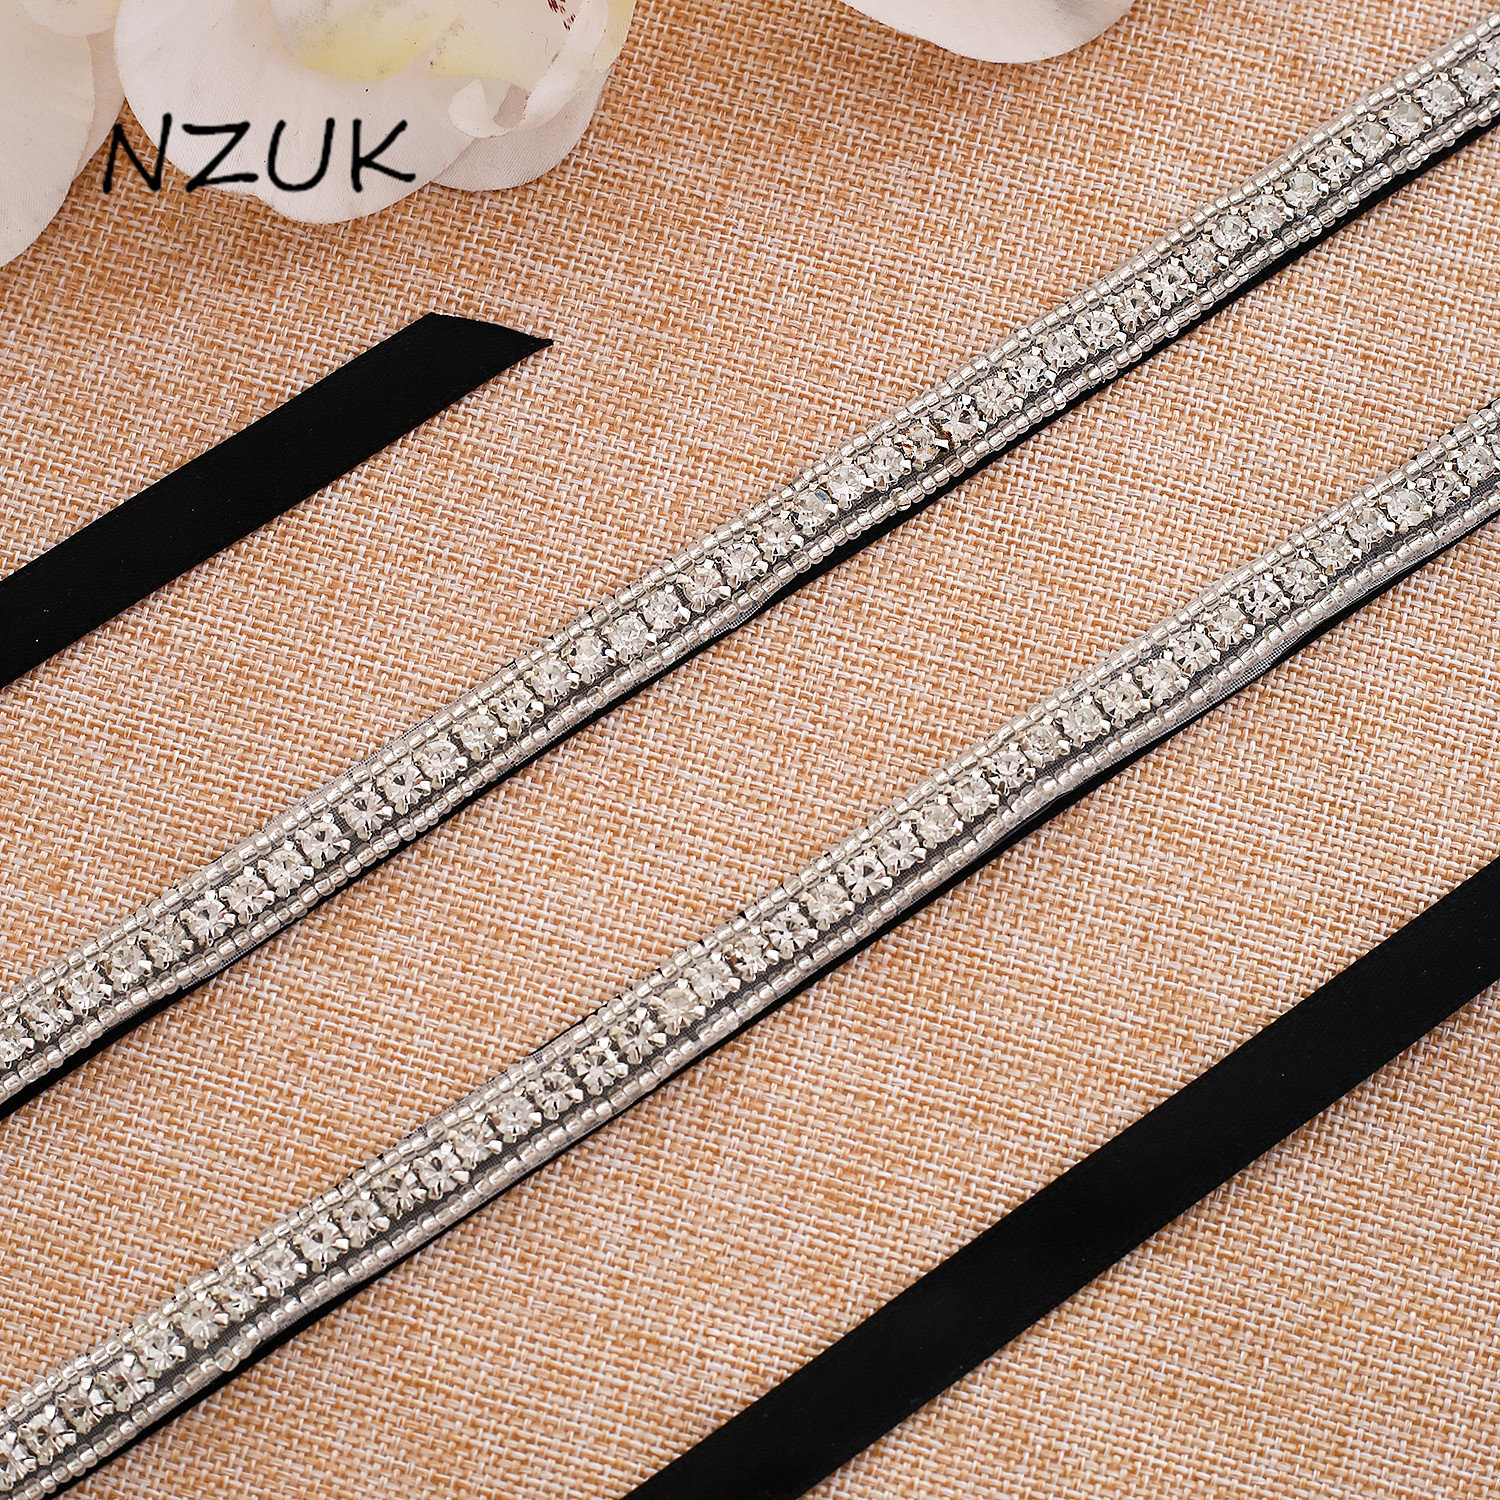 Diamond Wedding Belt Woman Crystal Belt Handmade Silver Rhinestones Wedding Sash Belt For Bridal Dress Y117S